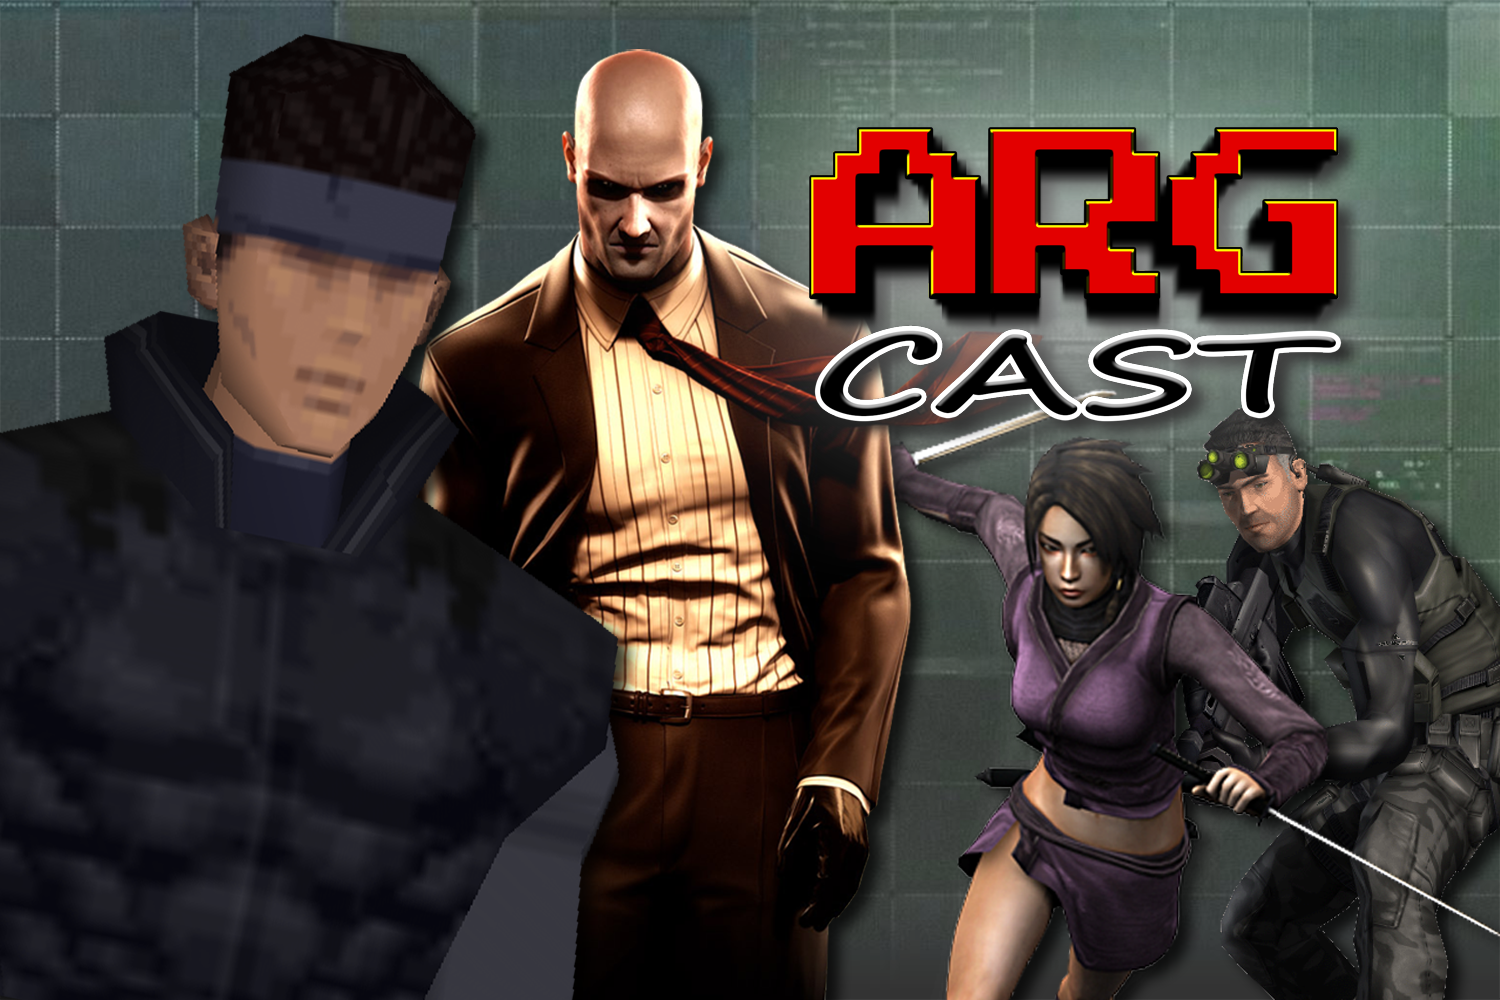 ARGcast #110: Sneakin' Around in Stealth Games with Dan Hindes